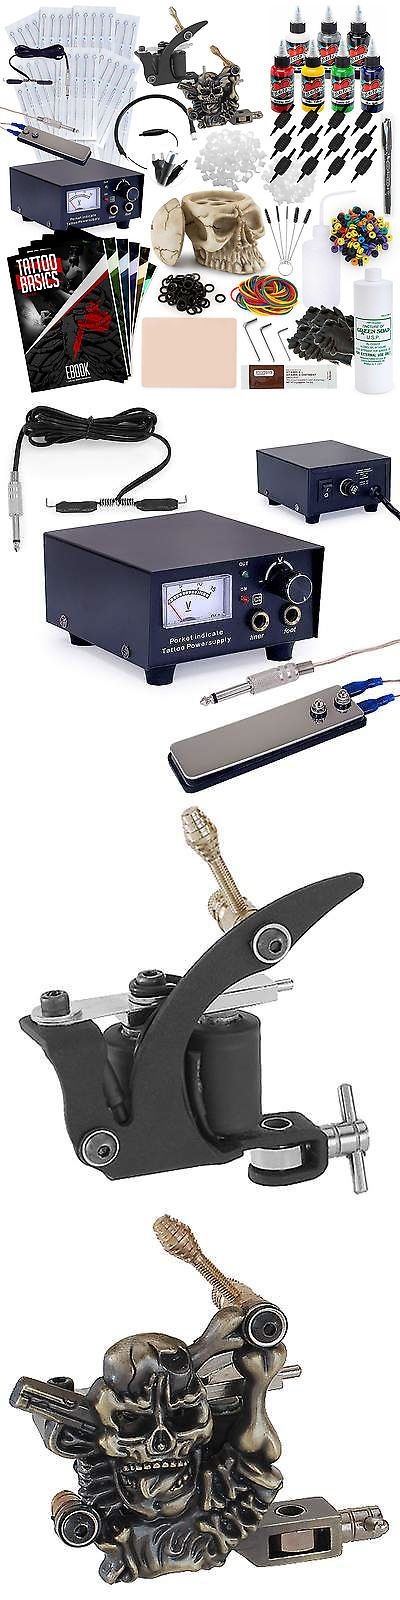 Tattoo Machines and Parts: Complete Tattoo Machine Kit - 2 Gun Skull Set -> BUY IT NOW ONLY: $70.99 on eBay!